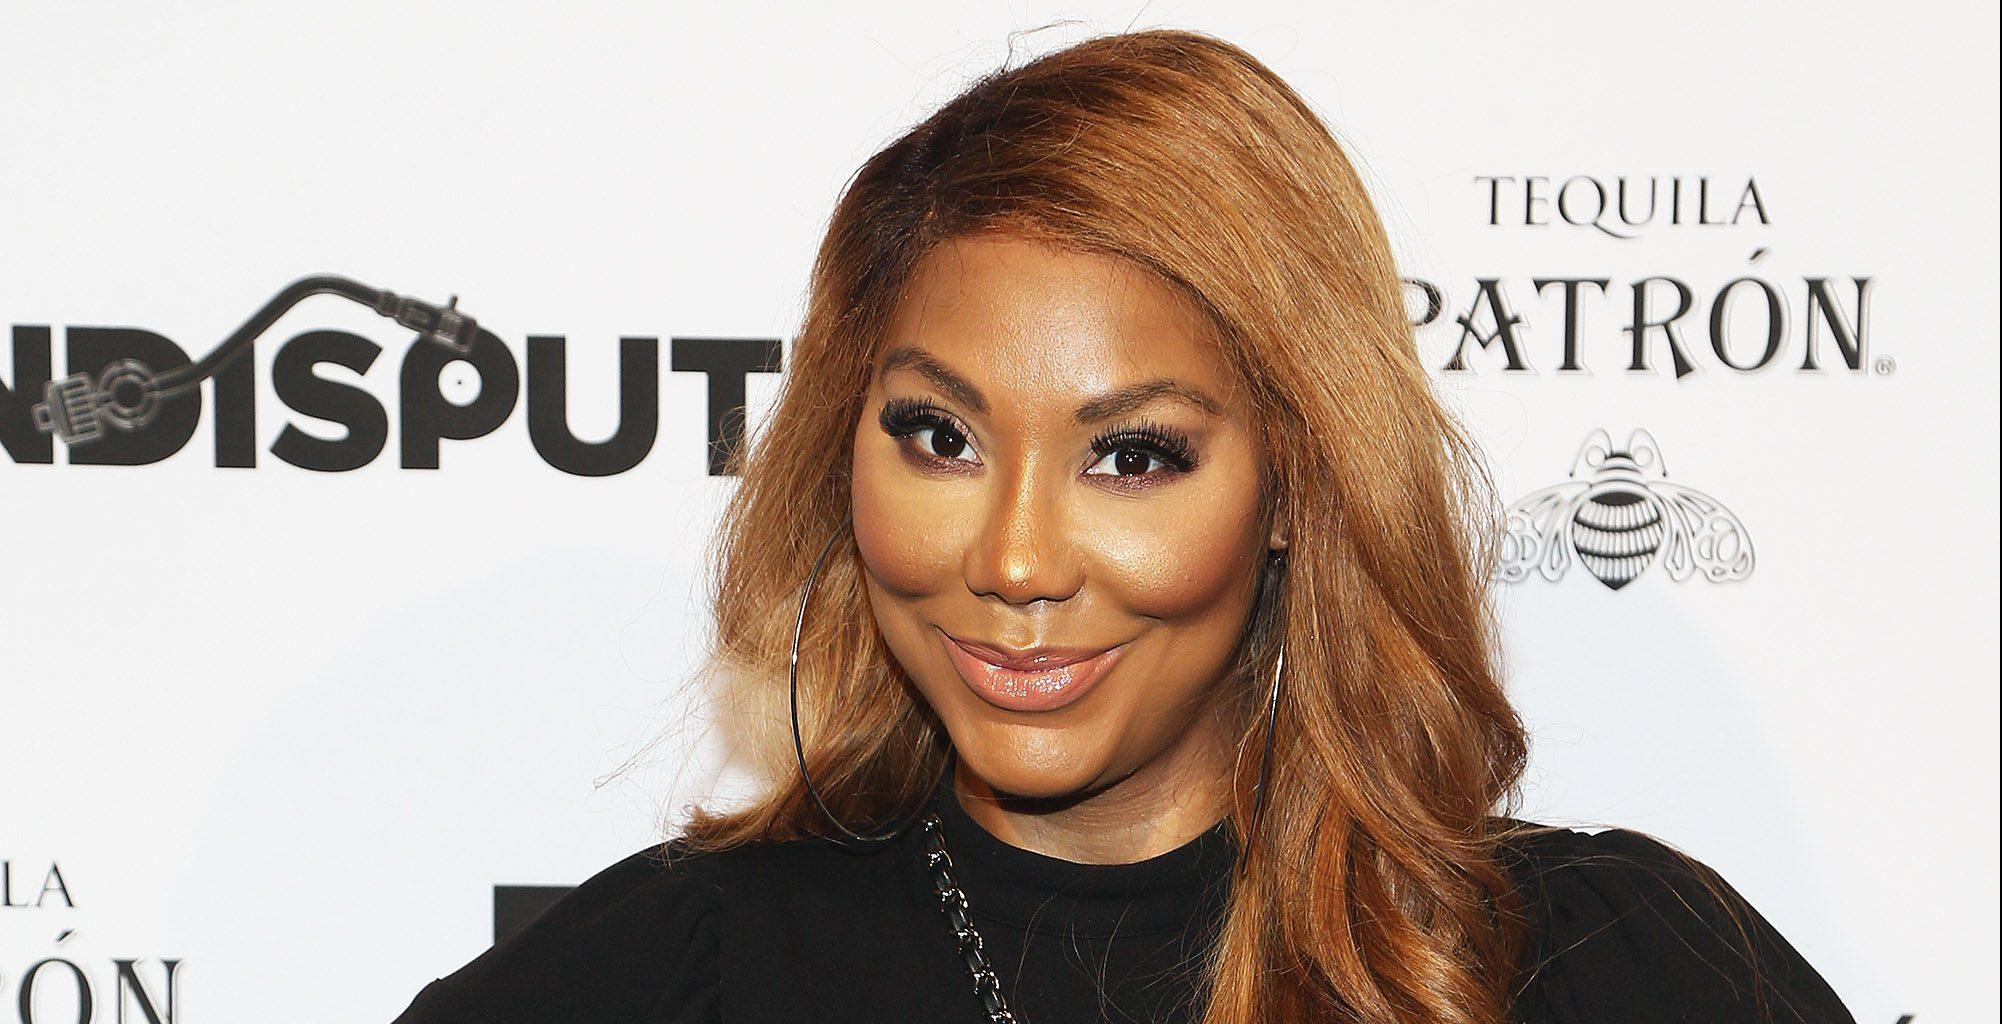 Tamar Braxton Offers Fans Advice About Holding A Grudge